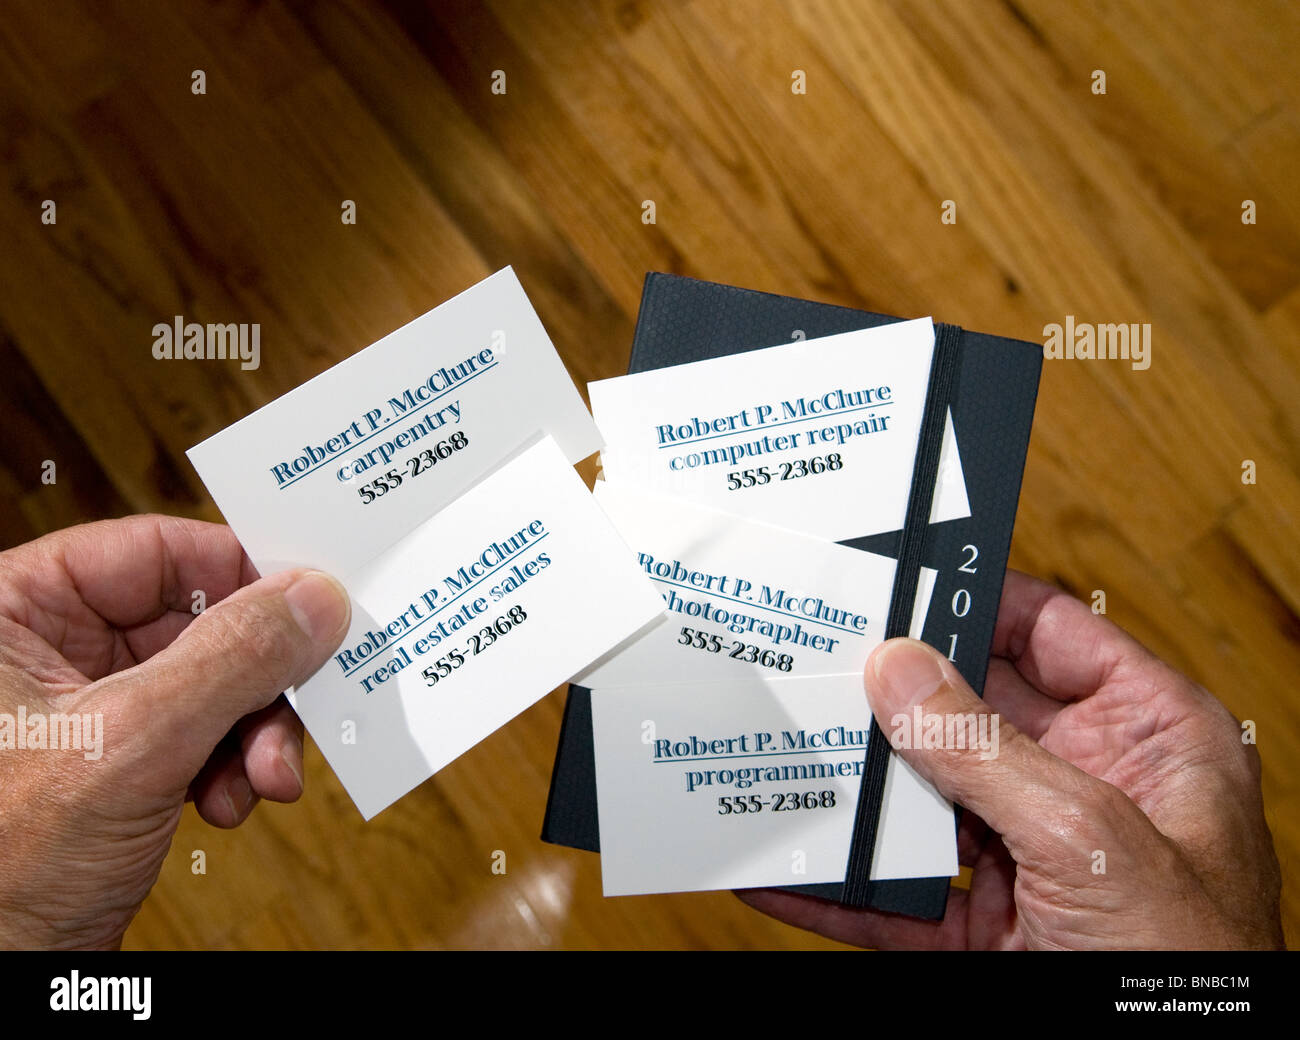 Close Up Of Hands Holding Multiple Business Cards With Varied Stock